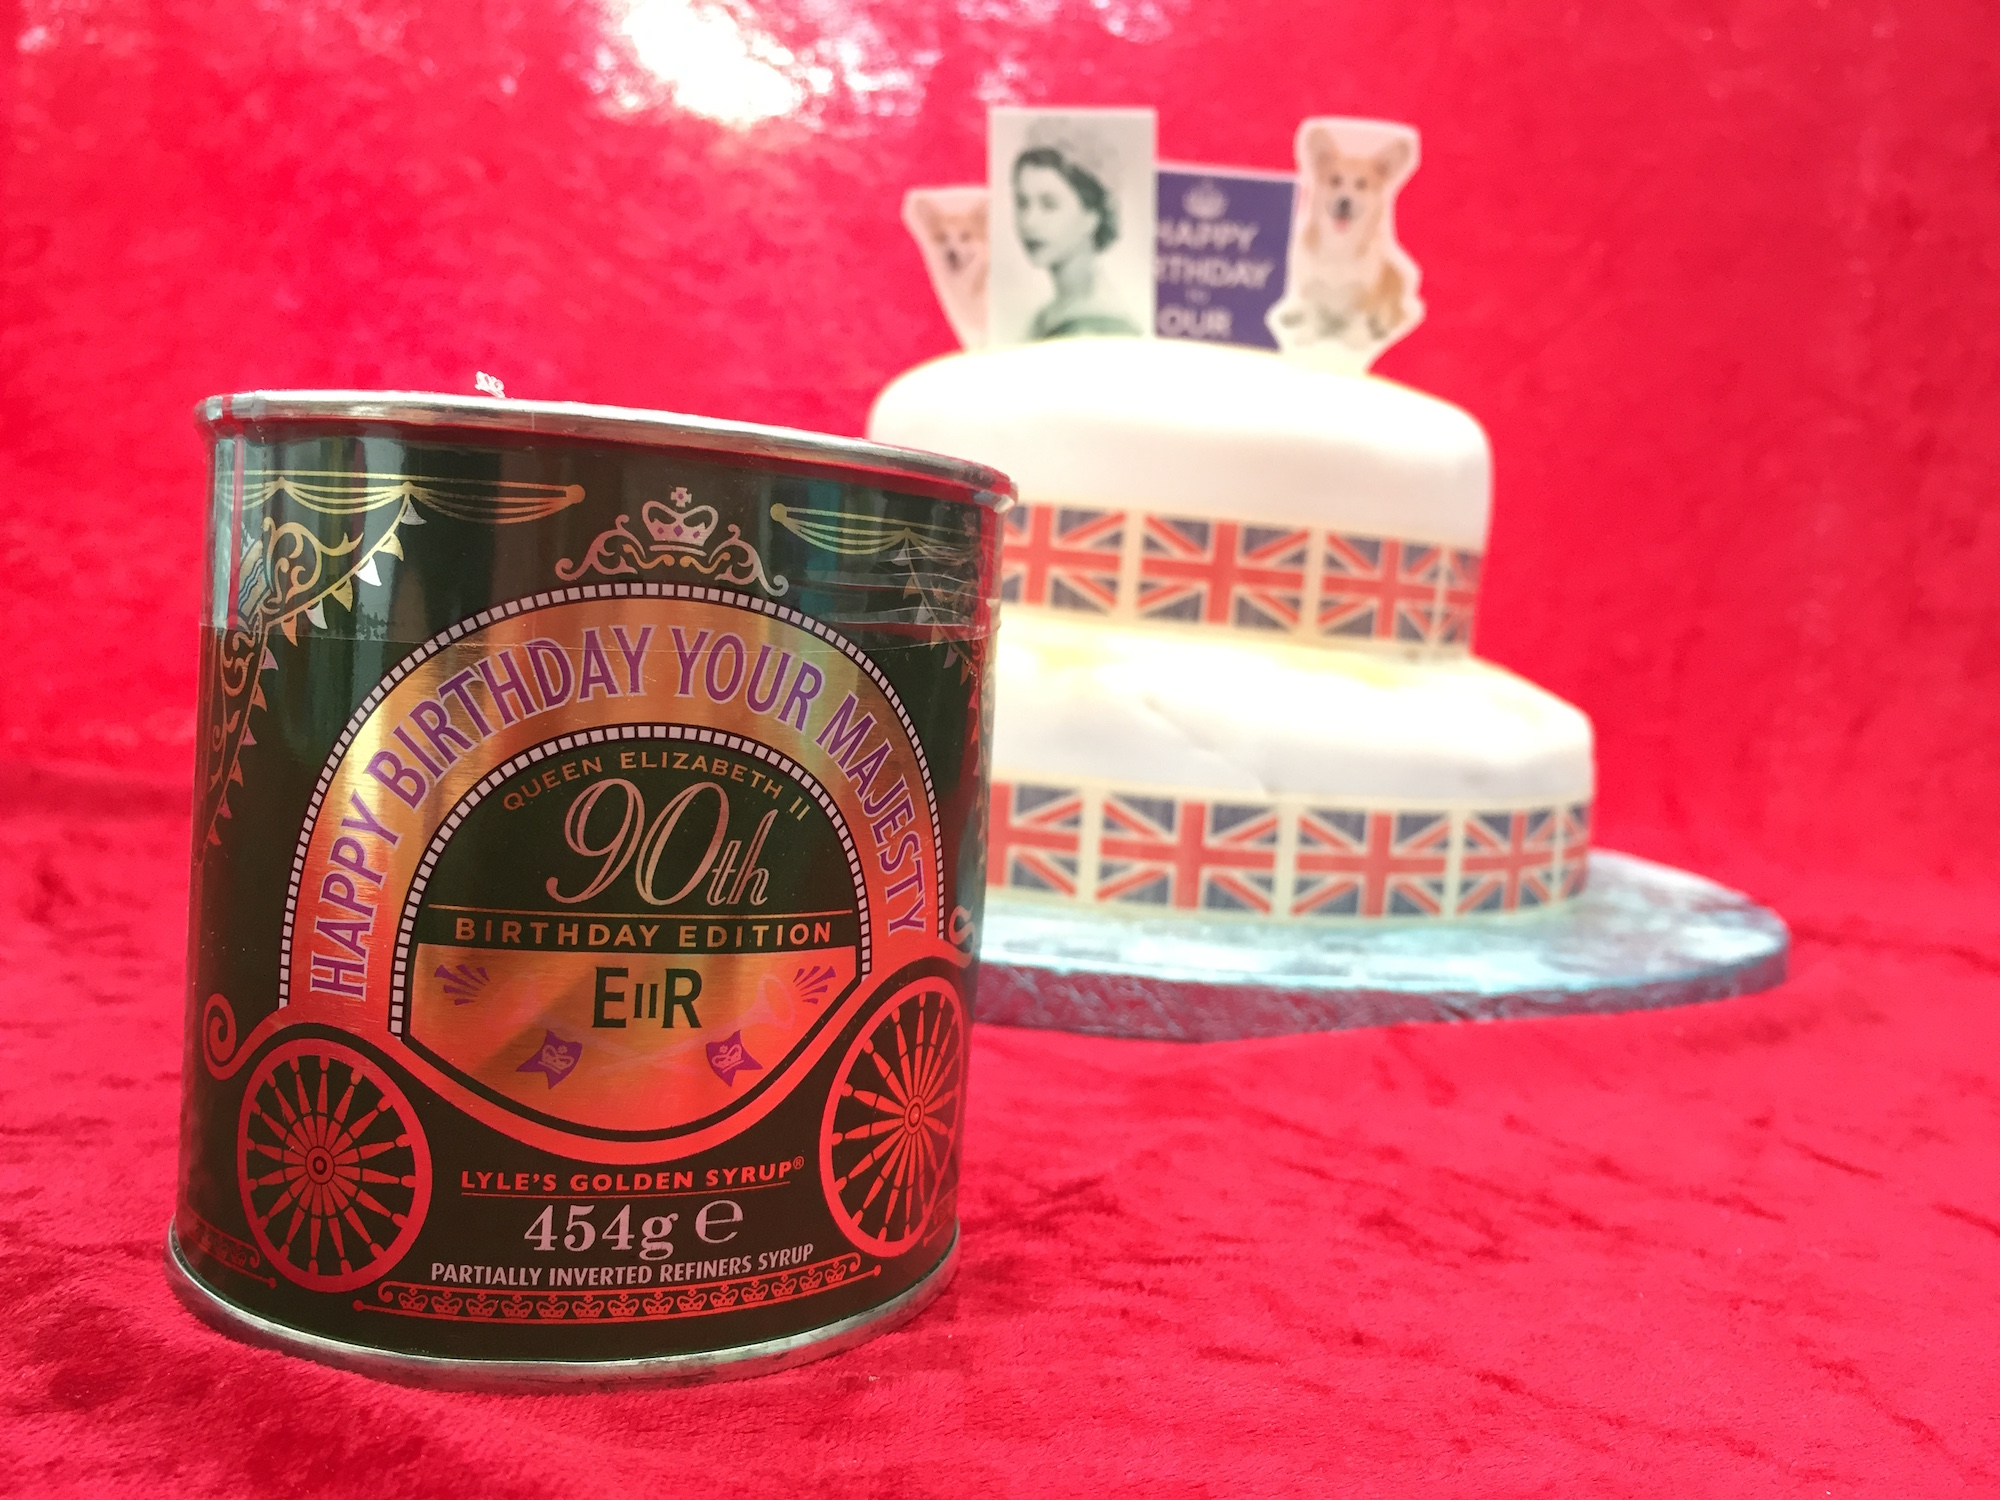 Her Majesty's 90th birthday cake #LylesRoyalCake